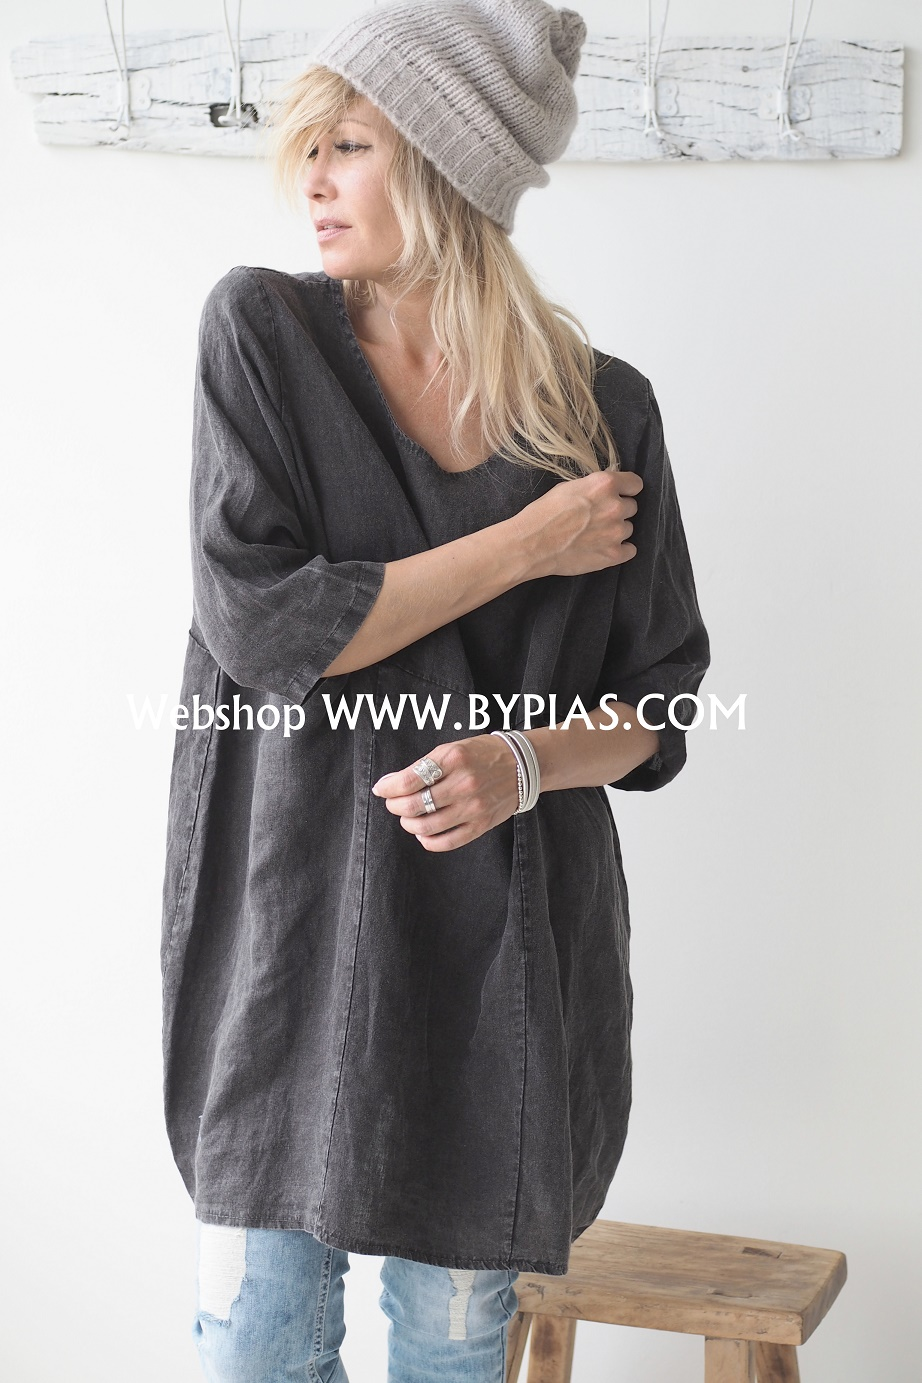 bypias-happy-tunic